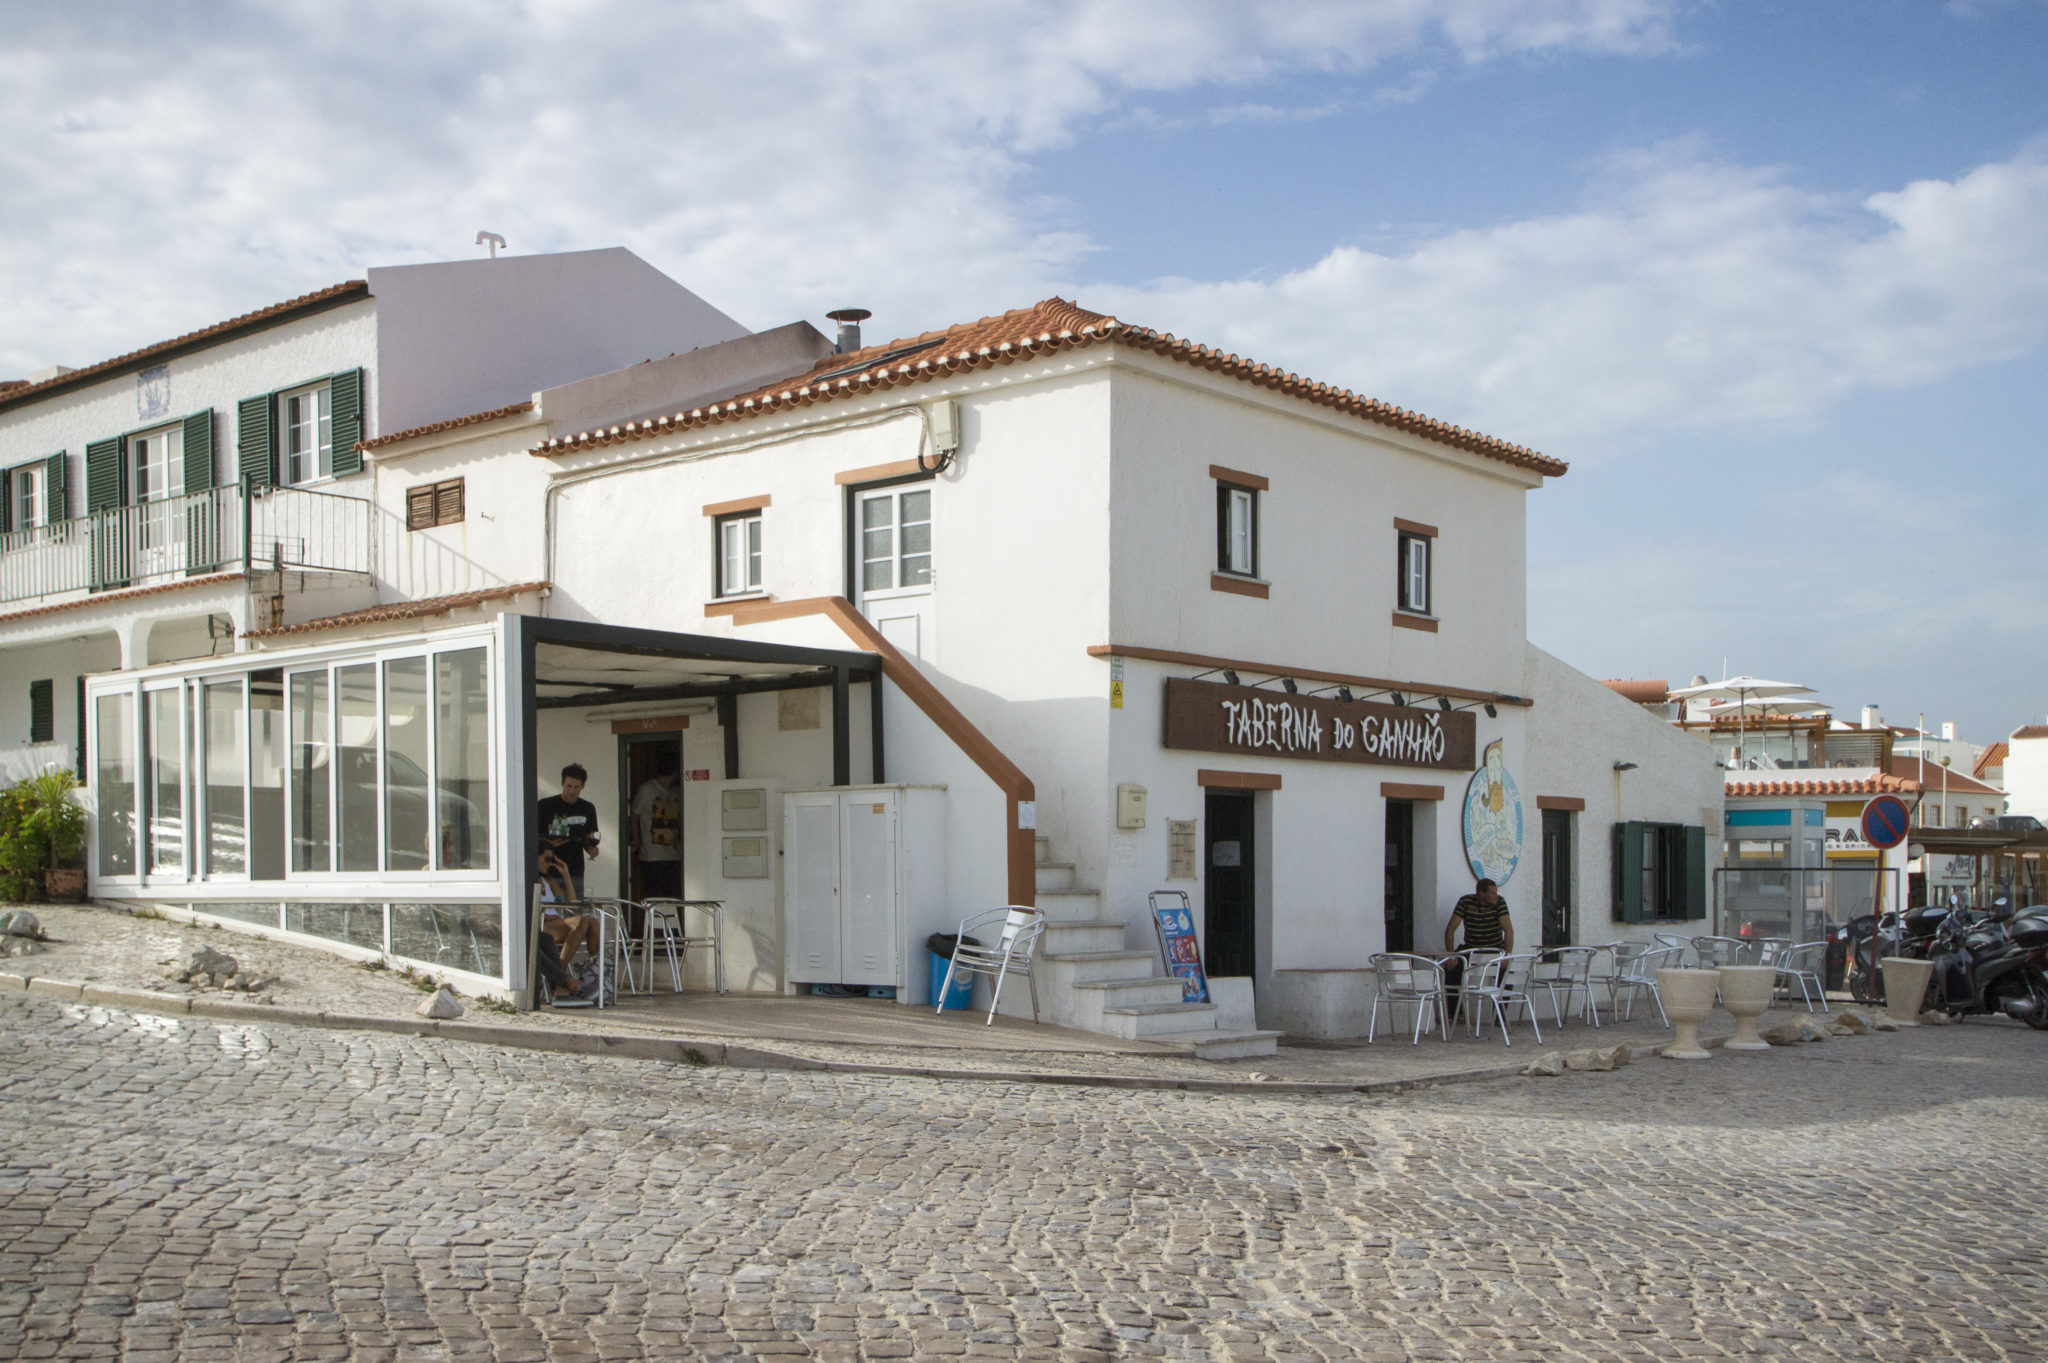 Peniche-Restaurants-Taberna-Do-Ganhao